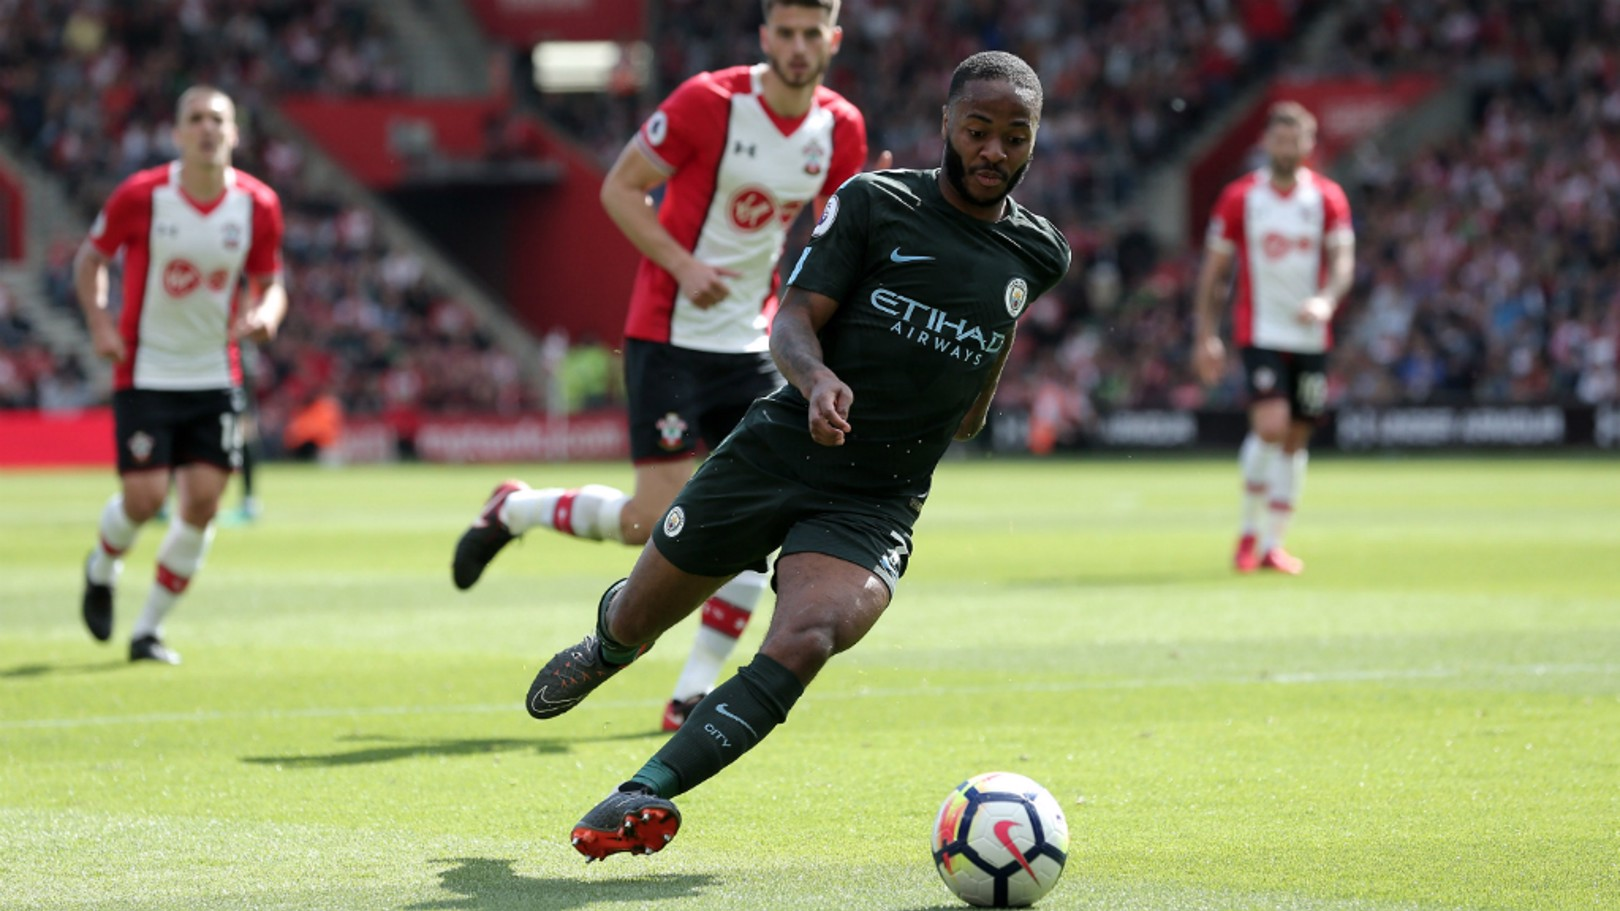 STERLING WORK: Raheem Sterling on the wing